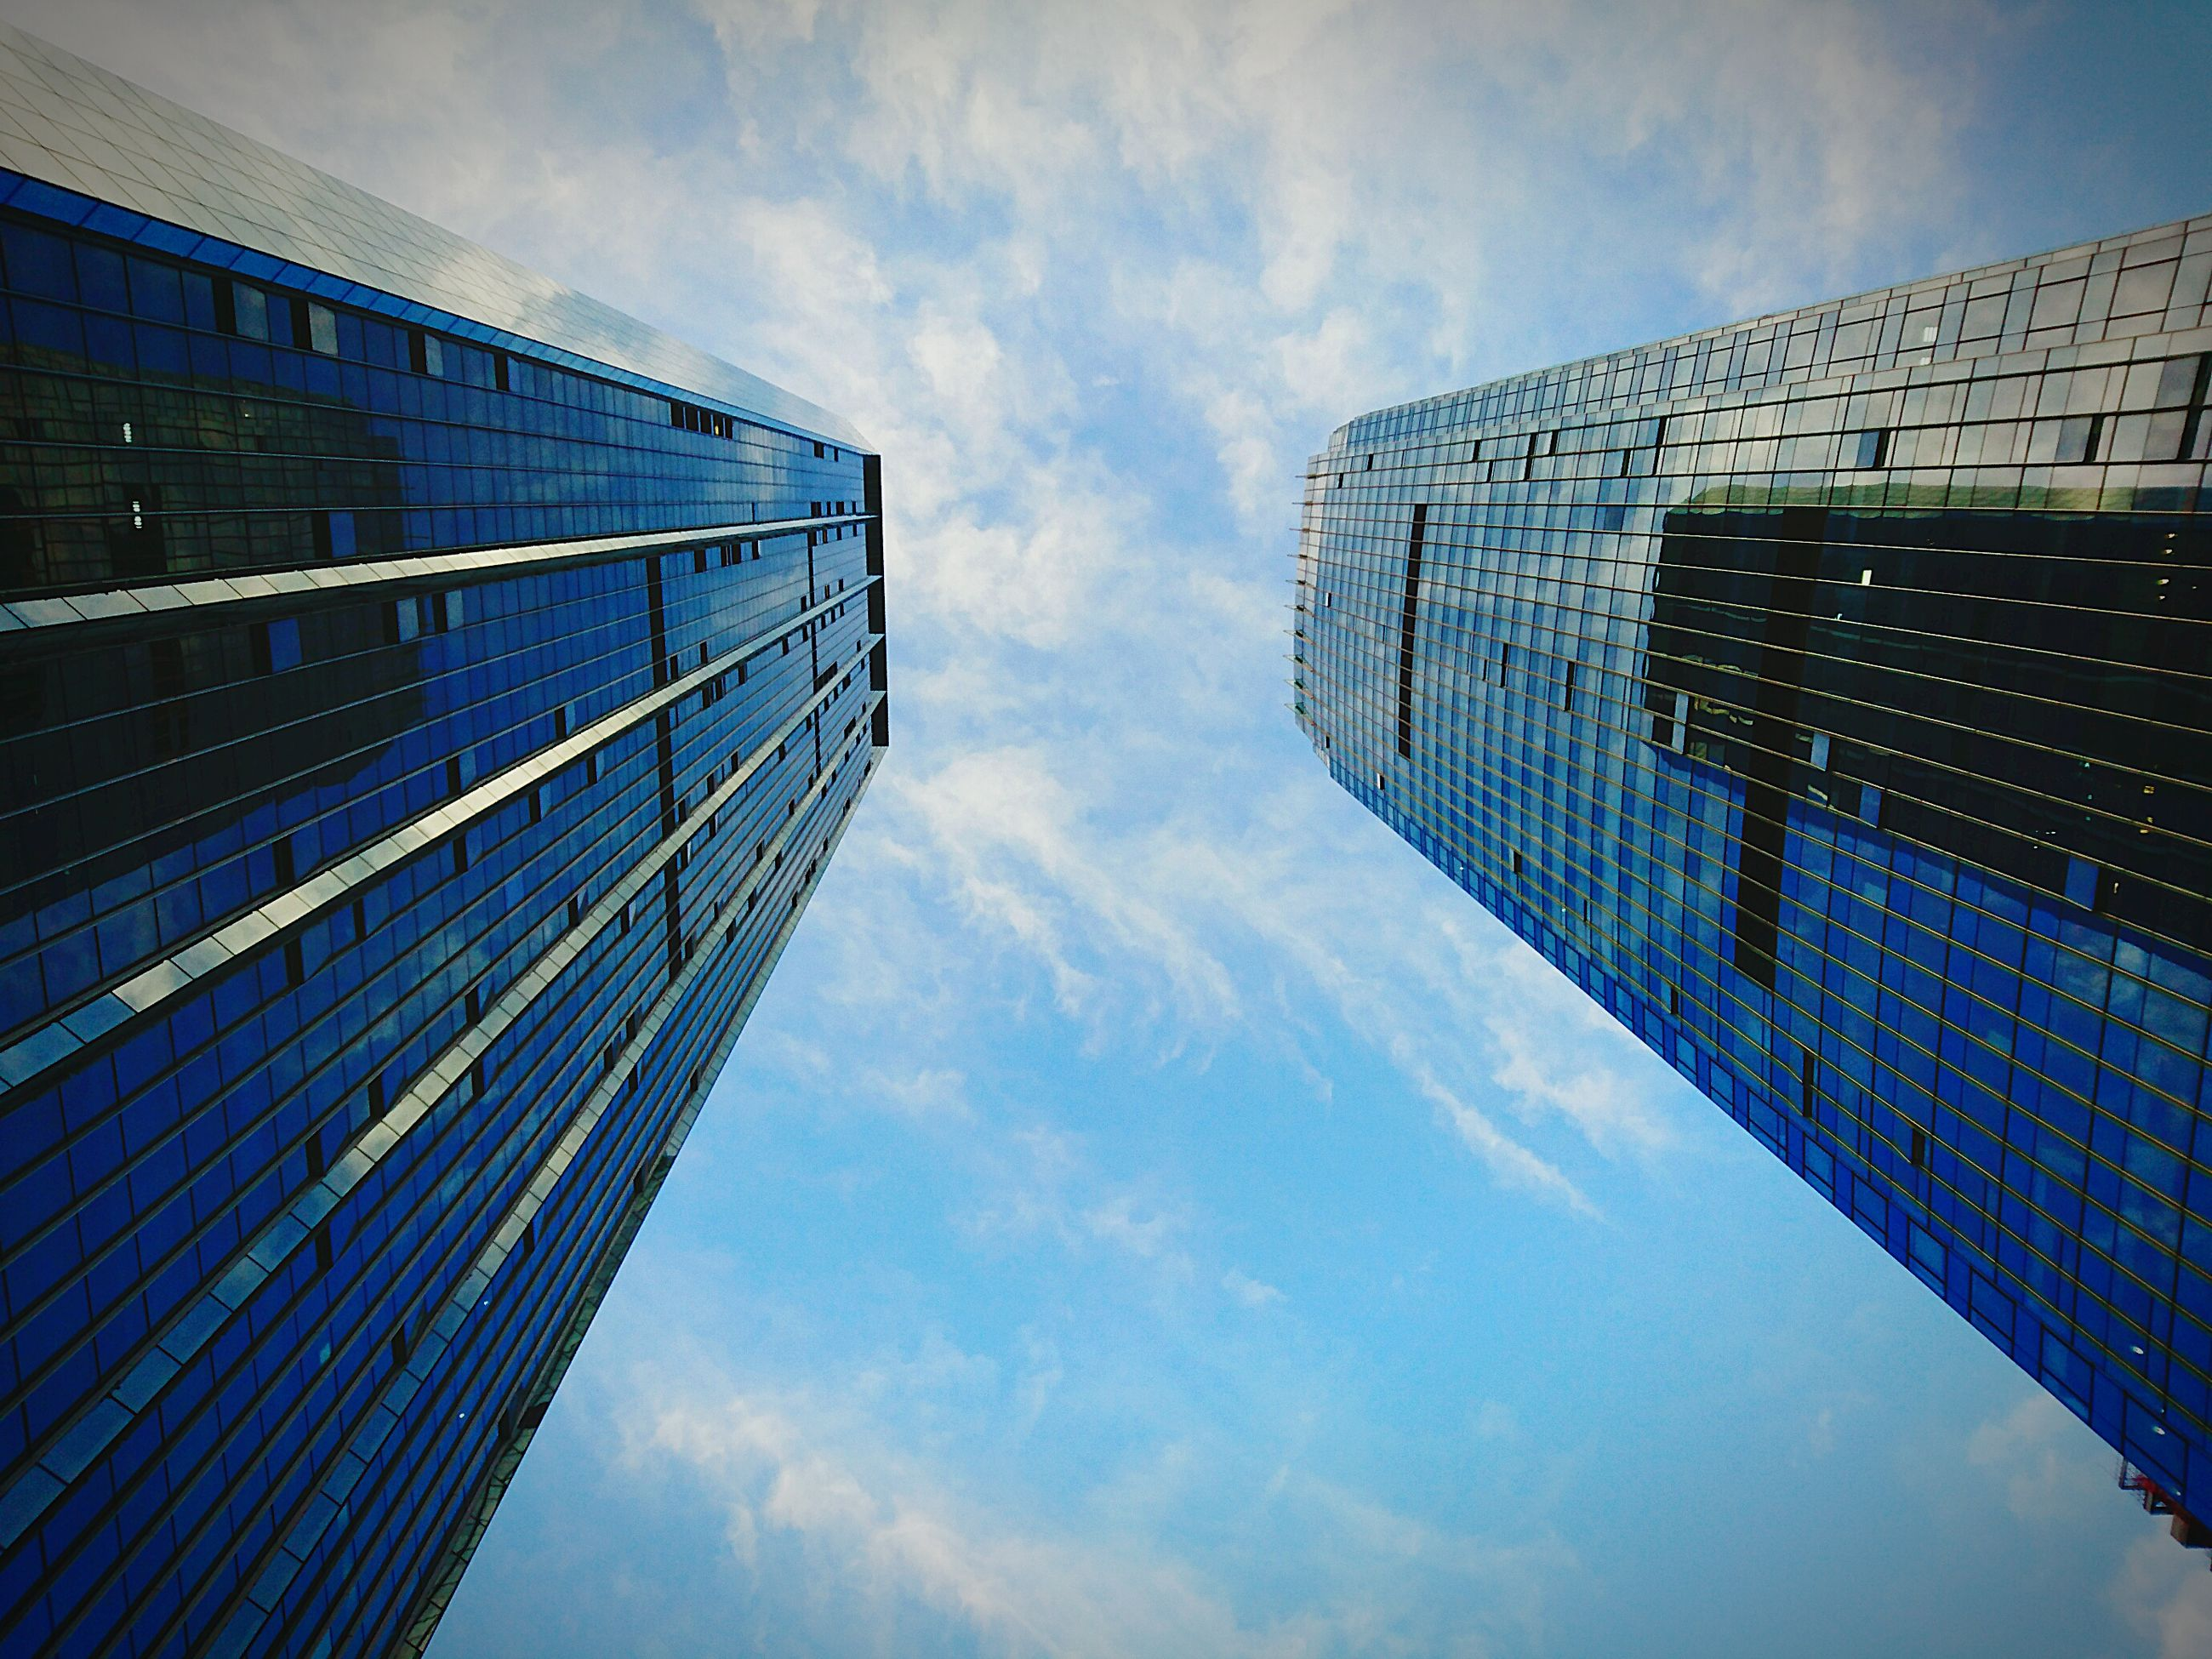 architecture, built structure, sky, building exterior, low angle view, cloud - sky, modern, blue, city, office building, cloudy, cloud, reflection, skyscraper, building, tall - high, day, outdoors, tower, no people